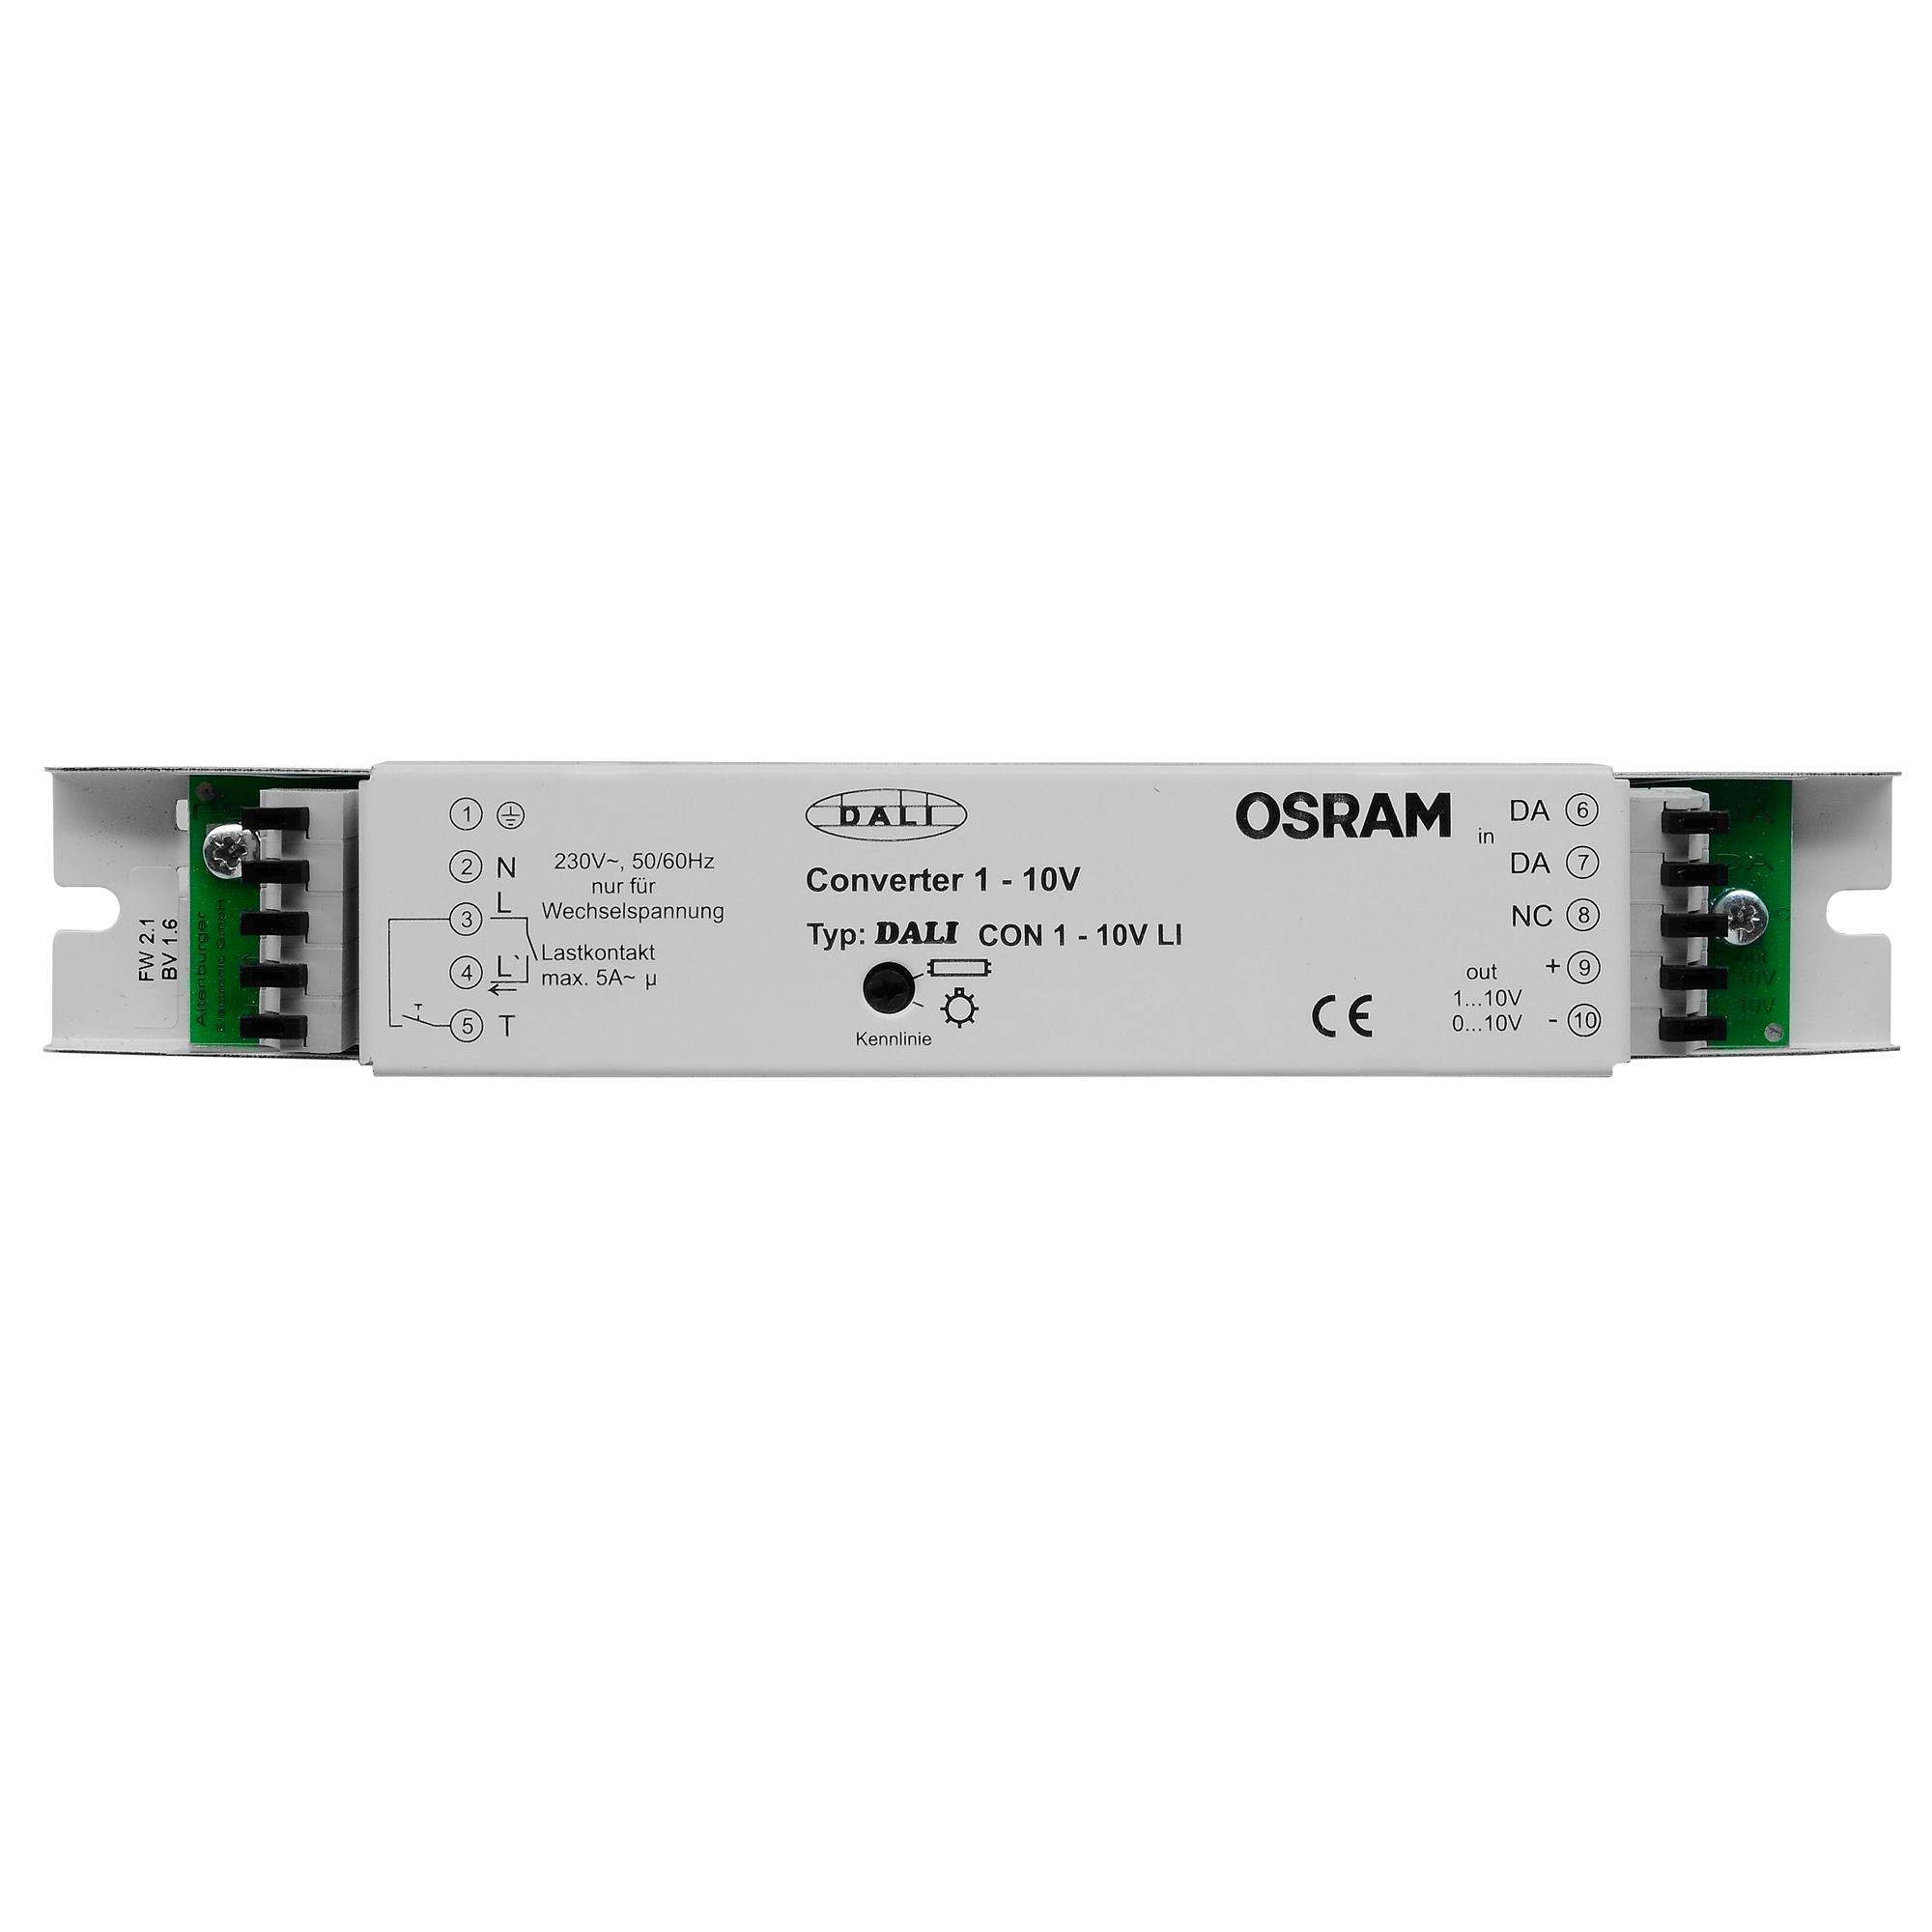 Oti Dali Dimmable Driver Constant Voltage 240v 24v White